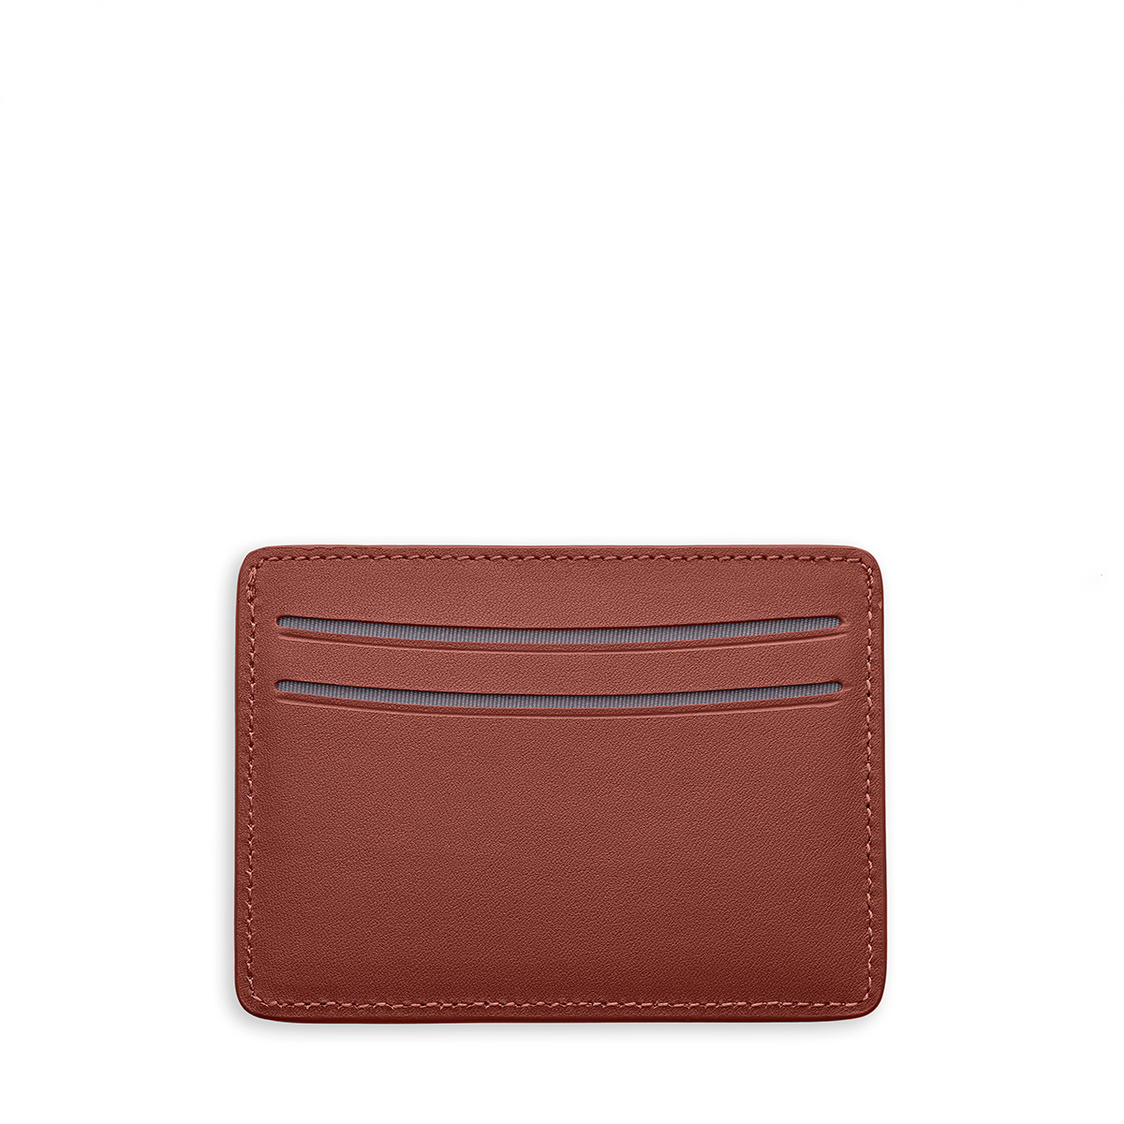 Kas Wallet - Cognac Leather